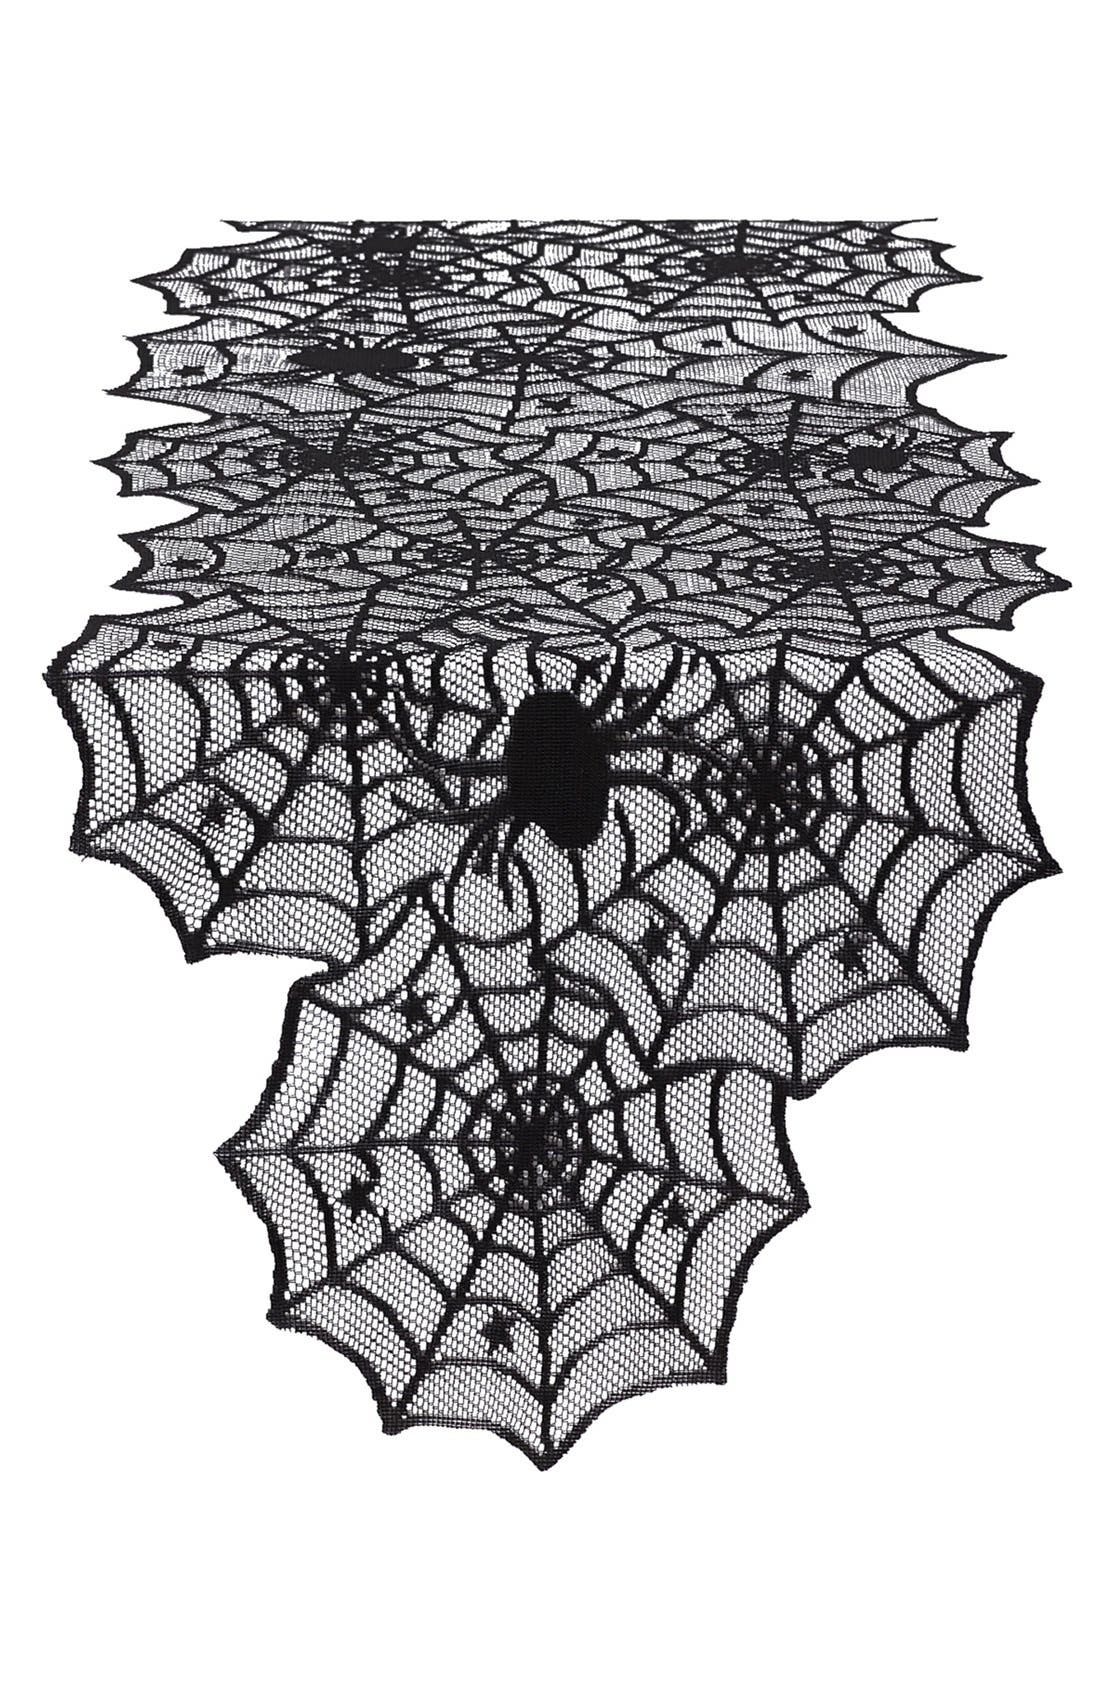 Main Image - Design Imports Spider Web Lace Table Runner